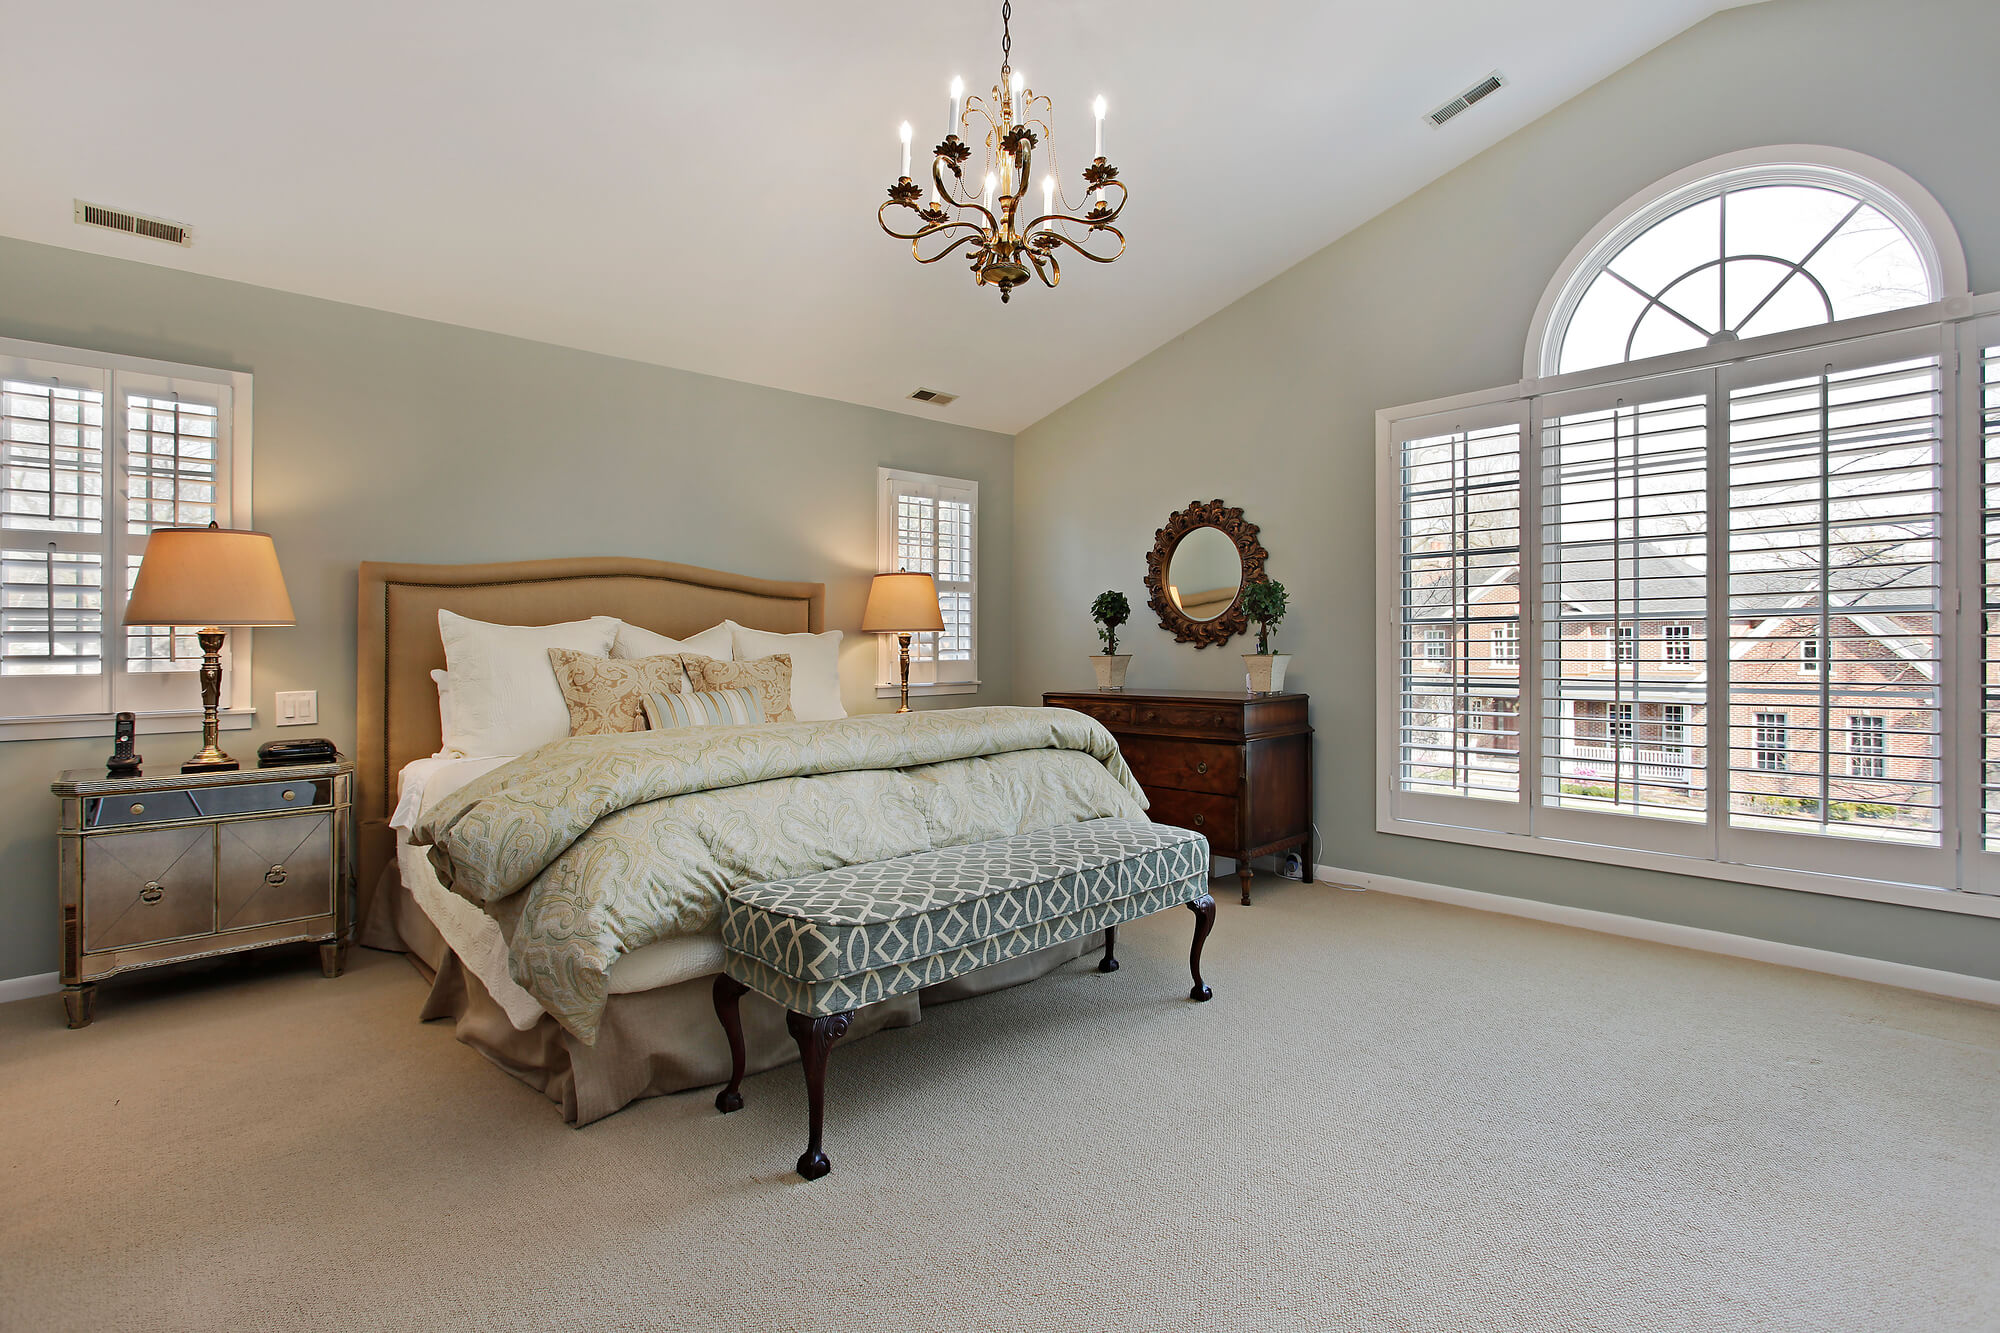 Bedroom Painting Services